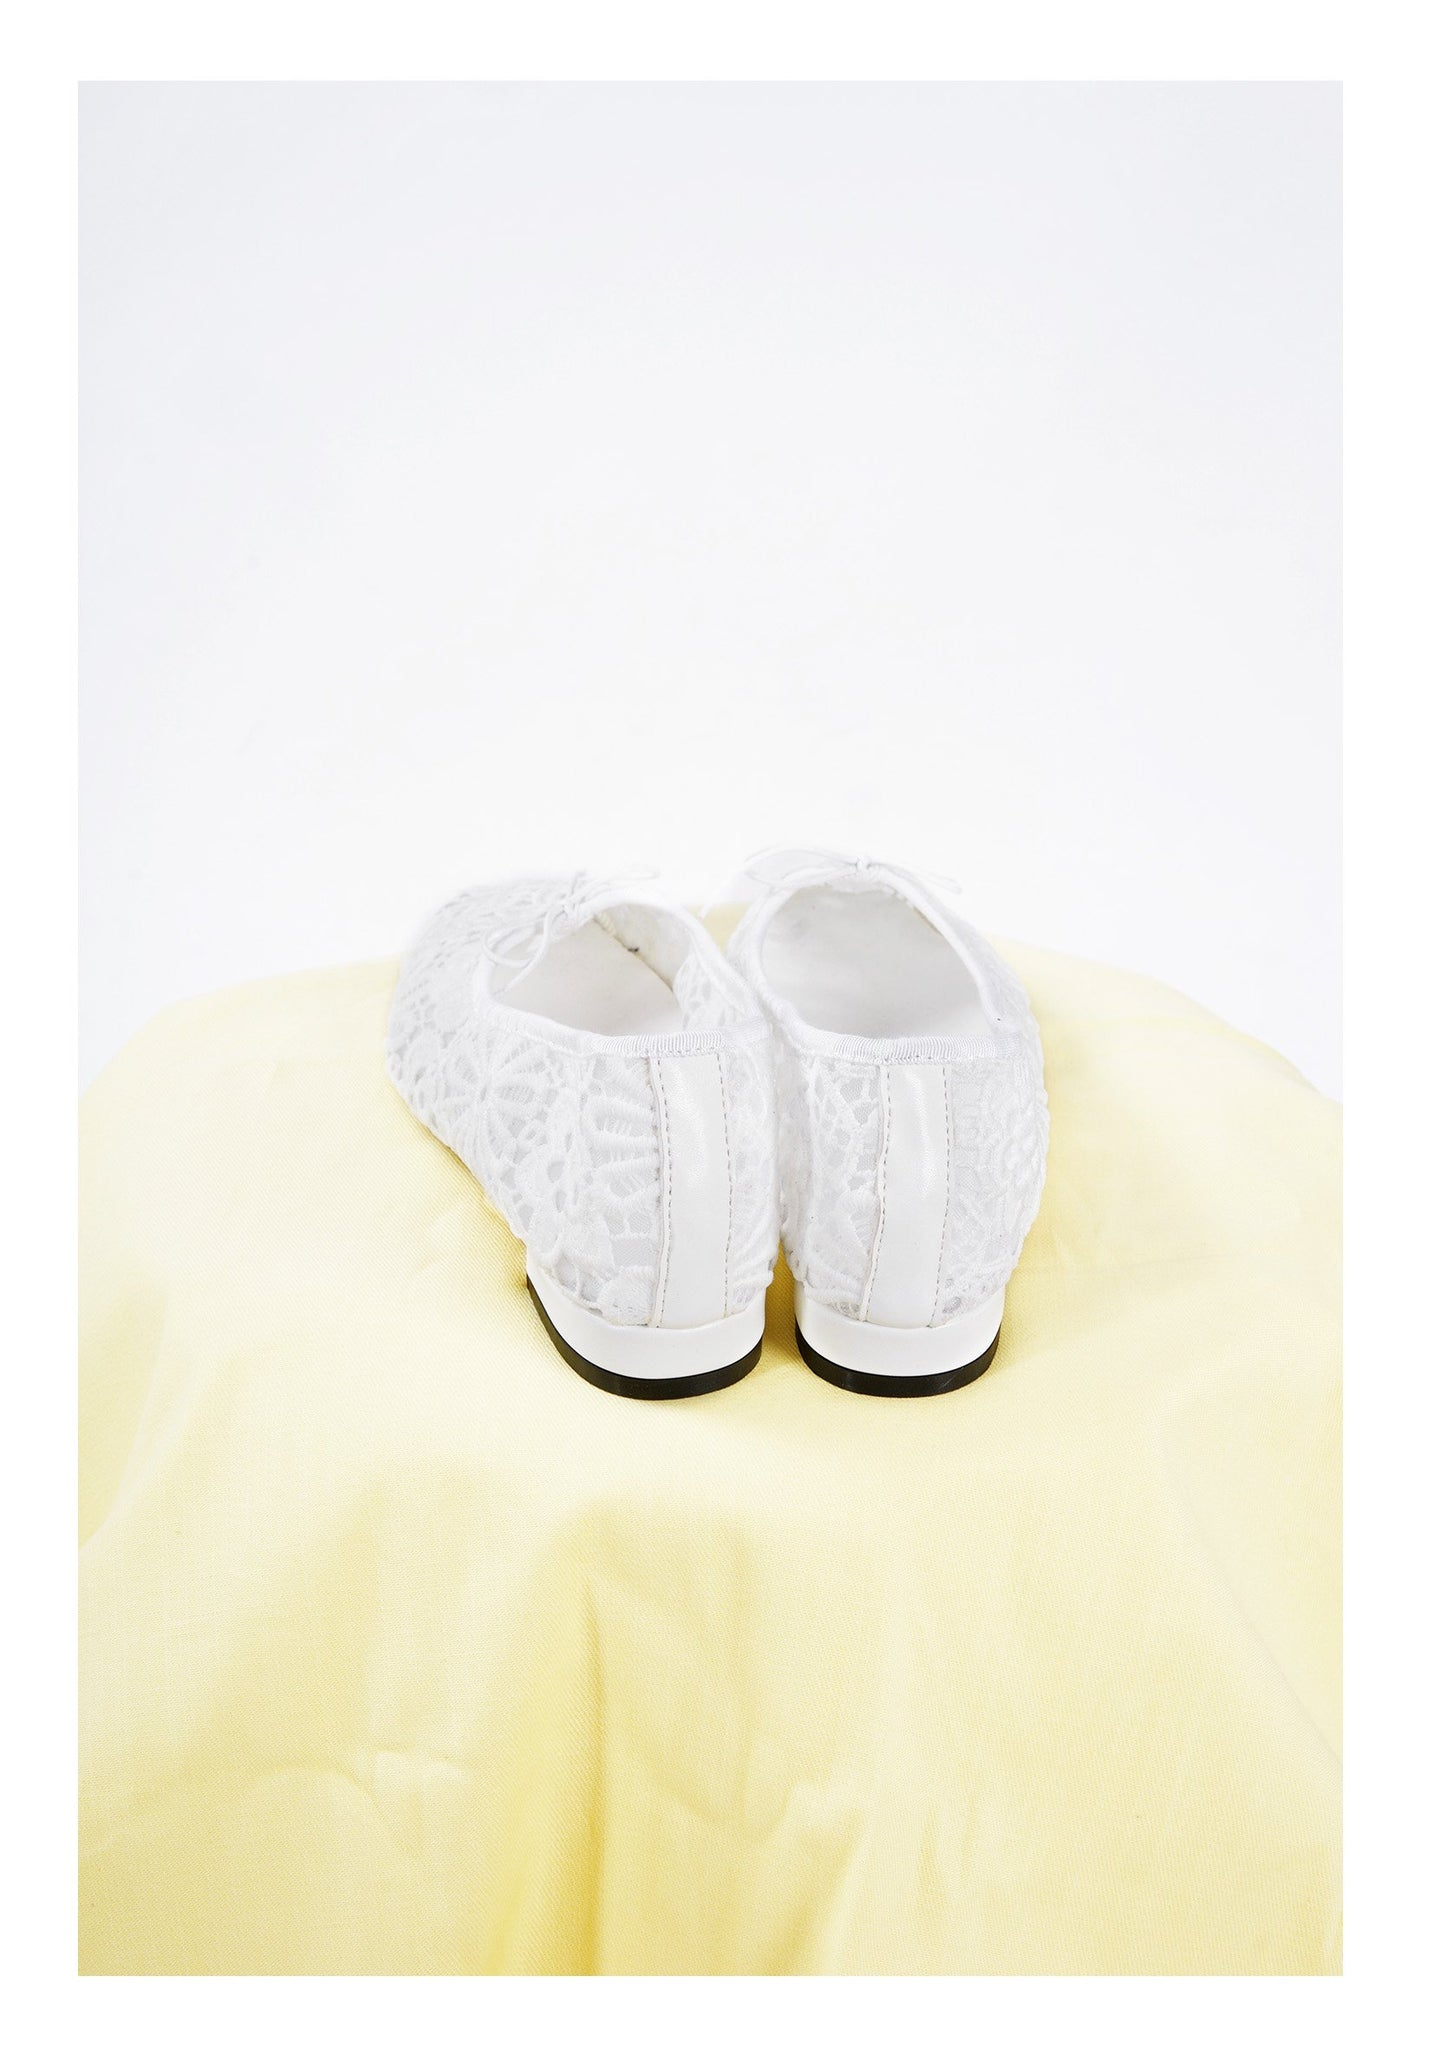 Sample Shoes - White Lace Flats - whoami